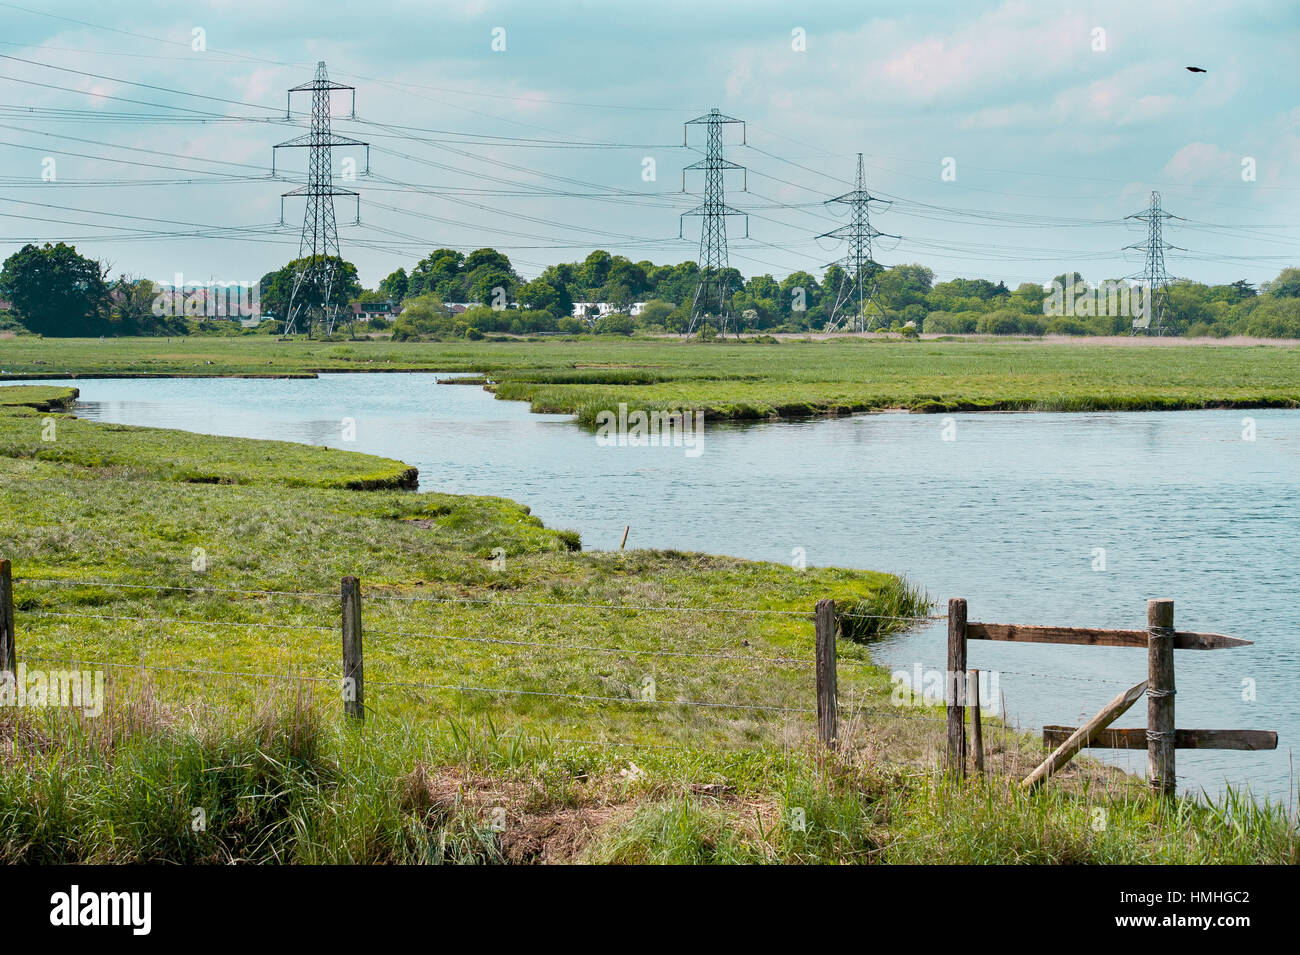 Views of the river Test in Southampton, Hampshire area. - Stock Image